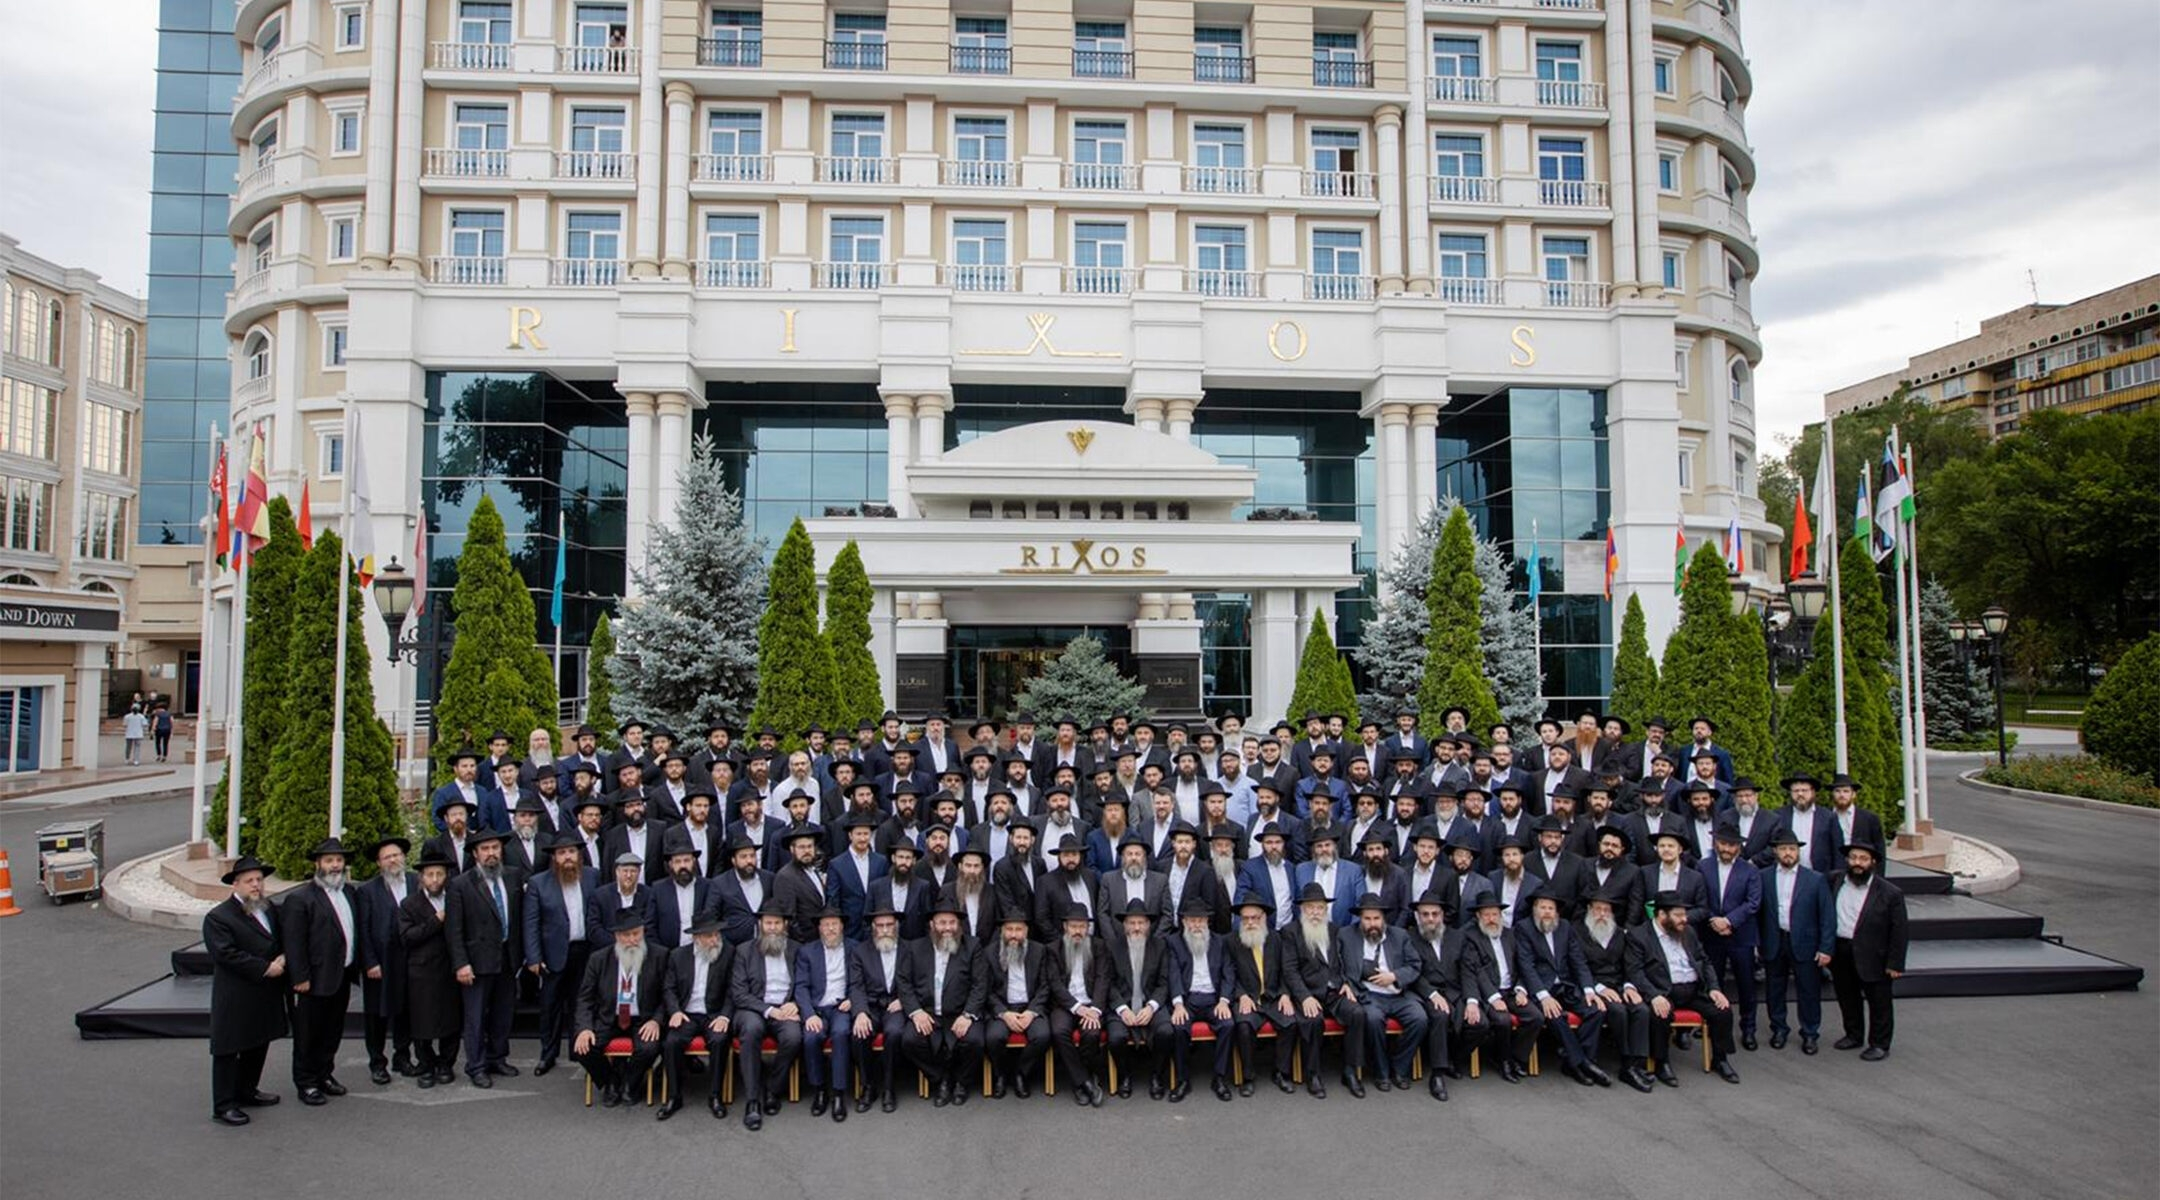 Chabad rabbis from across the former Soviet Union pose for a group photo in Almaty, Kazakhstan on July 29, 2021. (Yehezkel Itkin)